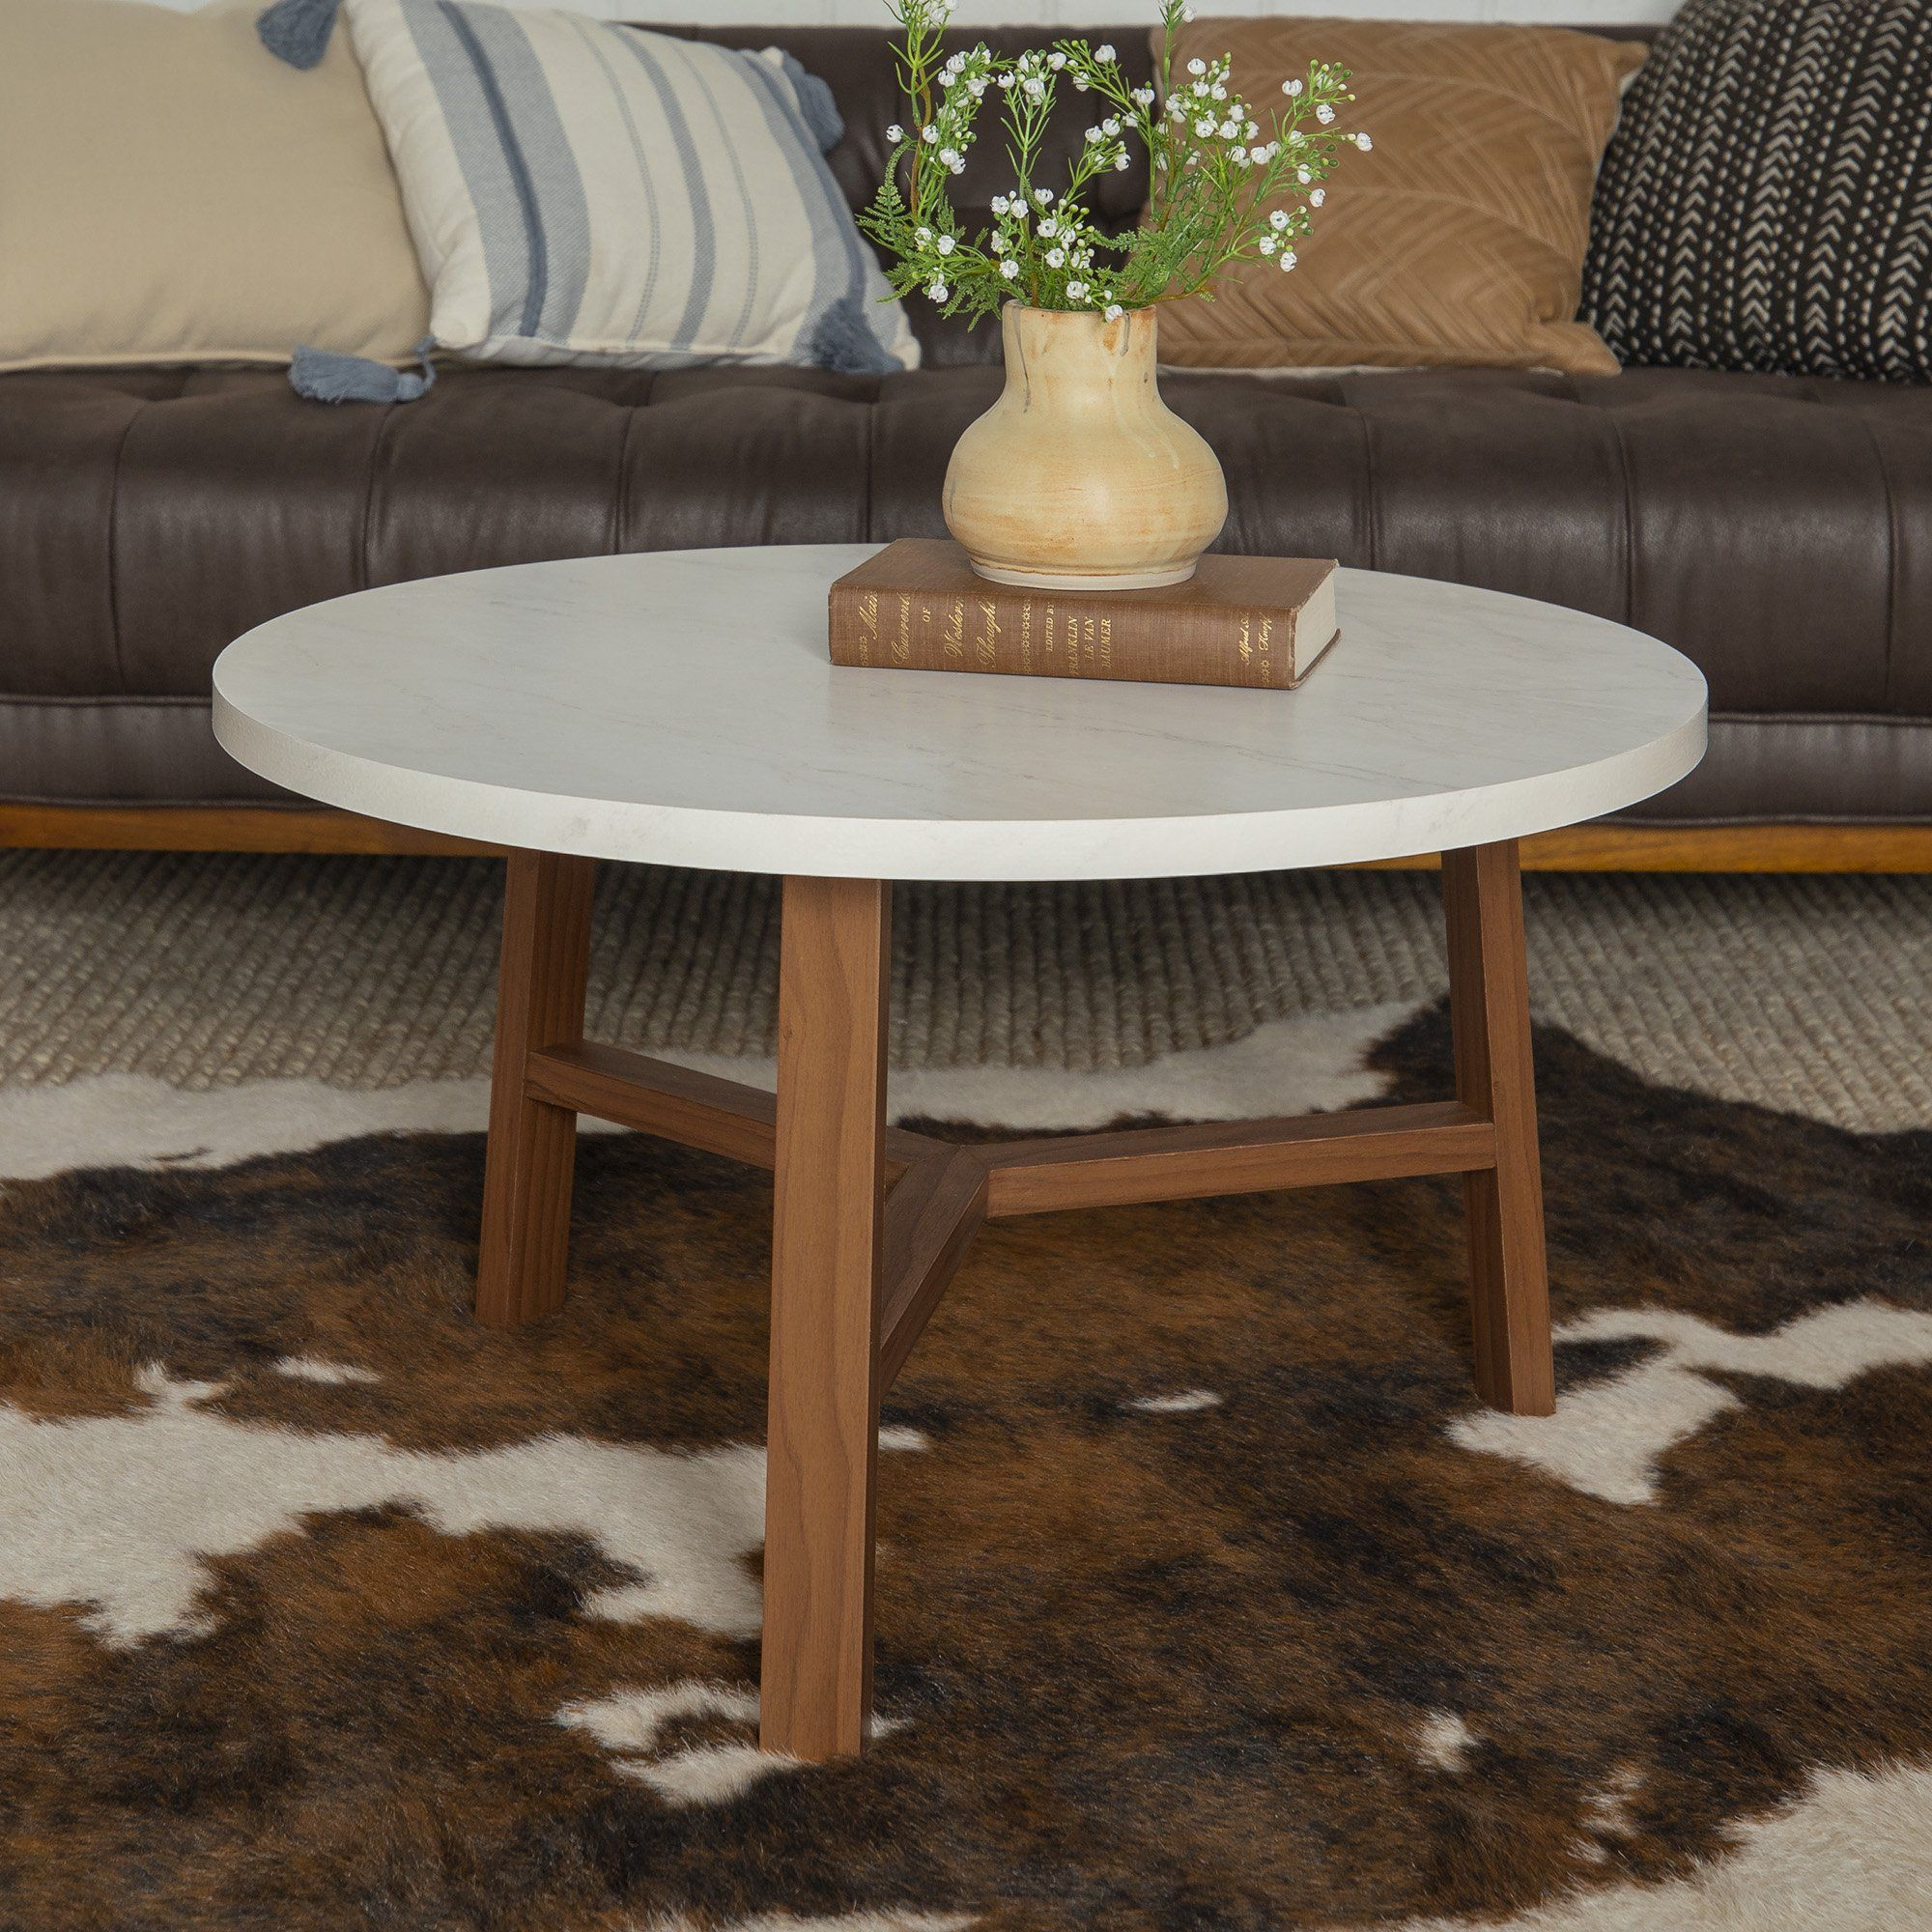 Manor Park Mid Century Modern Round Coffee Table White Marble And Acorn Walmart Com In 2021 Round Coffee Table Modern Coffee Table Mid Century Coffee Table [ 2000 x 2000 Pixel ]